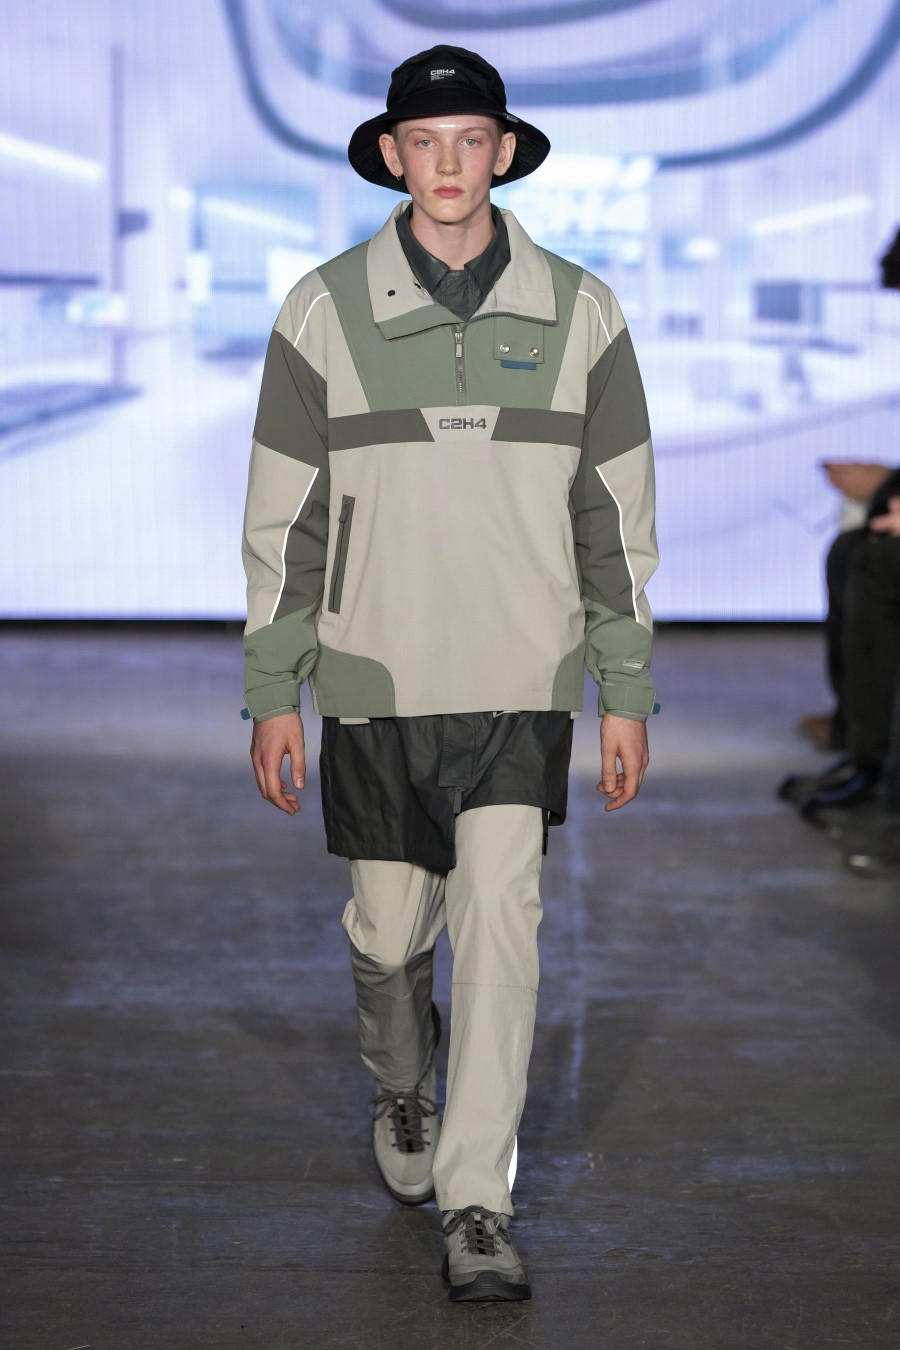 C2H4 - Printemps-Été 2020 - London Fashion Week Men's